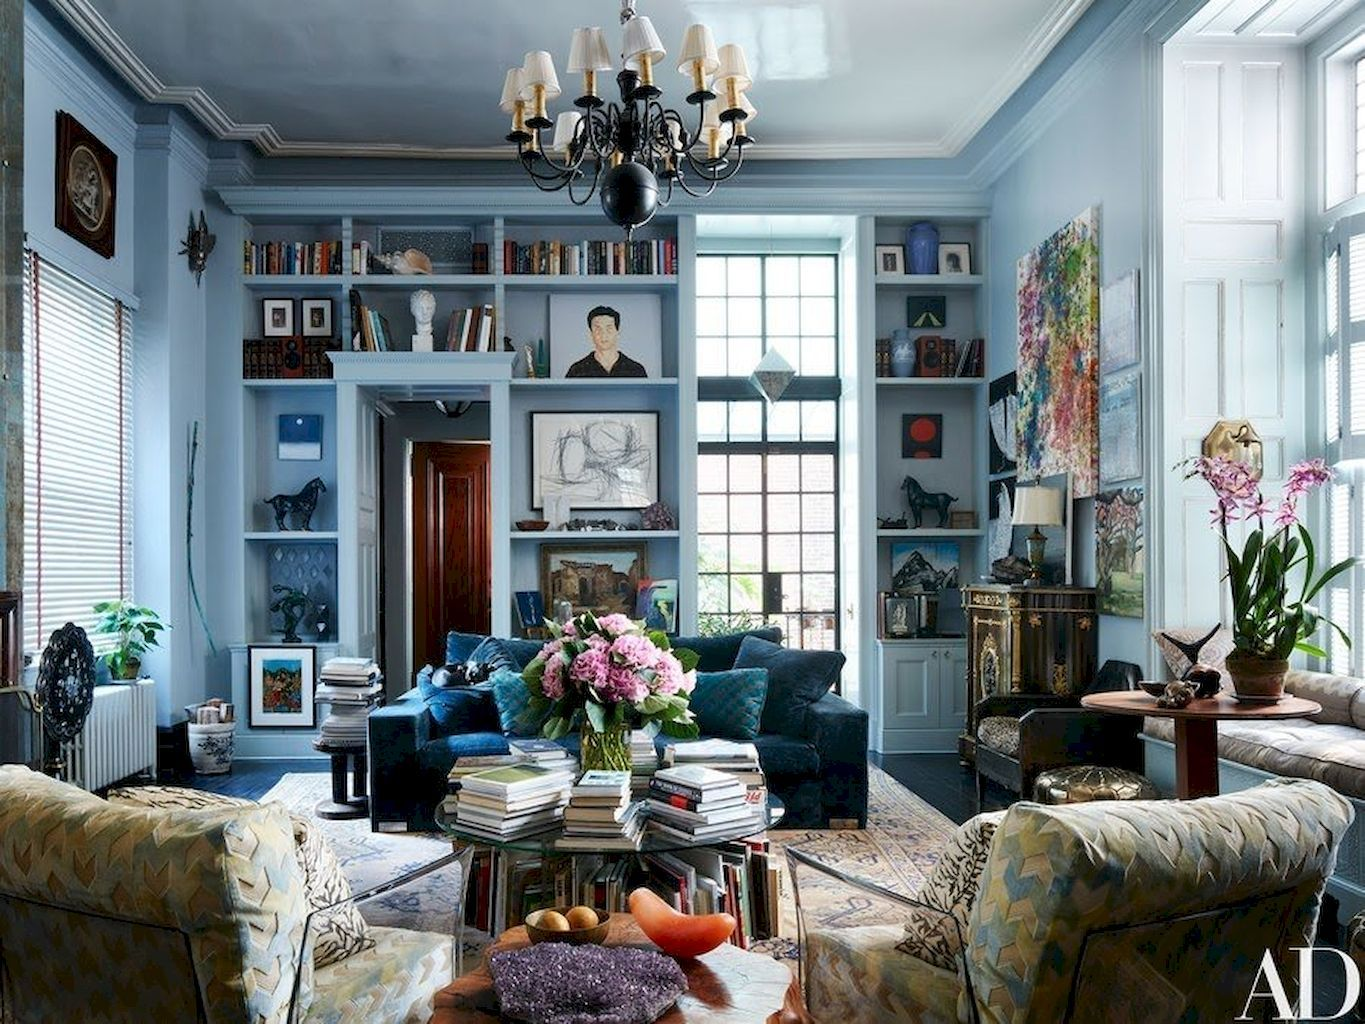 Decorating ideas for living room walls  cozy and stylish coastal living room decor ideas  coastal living